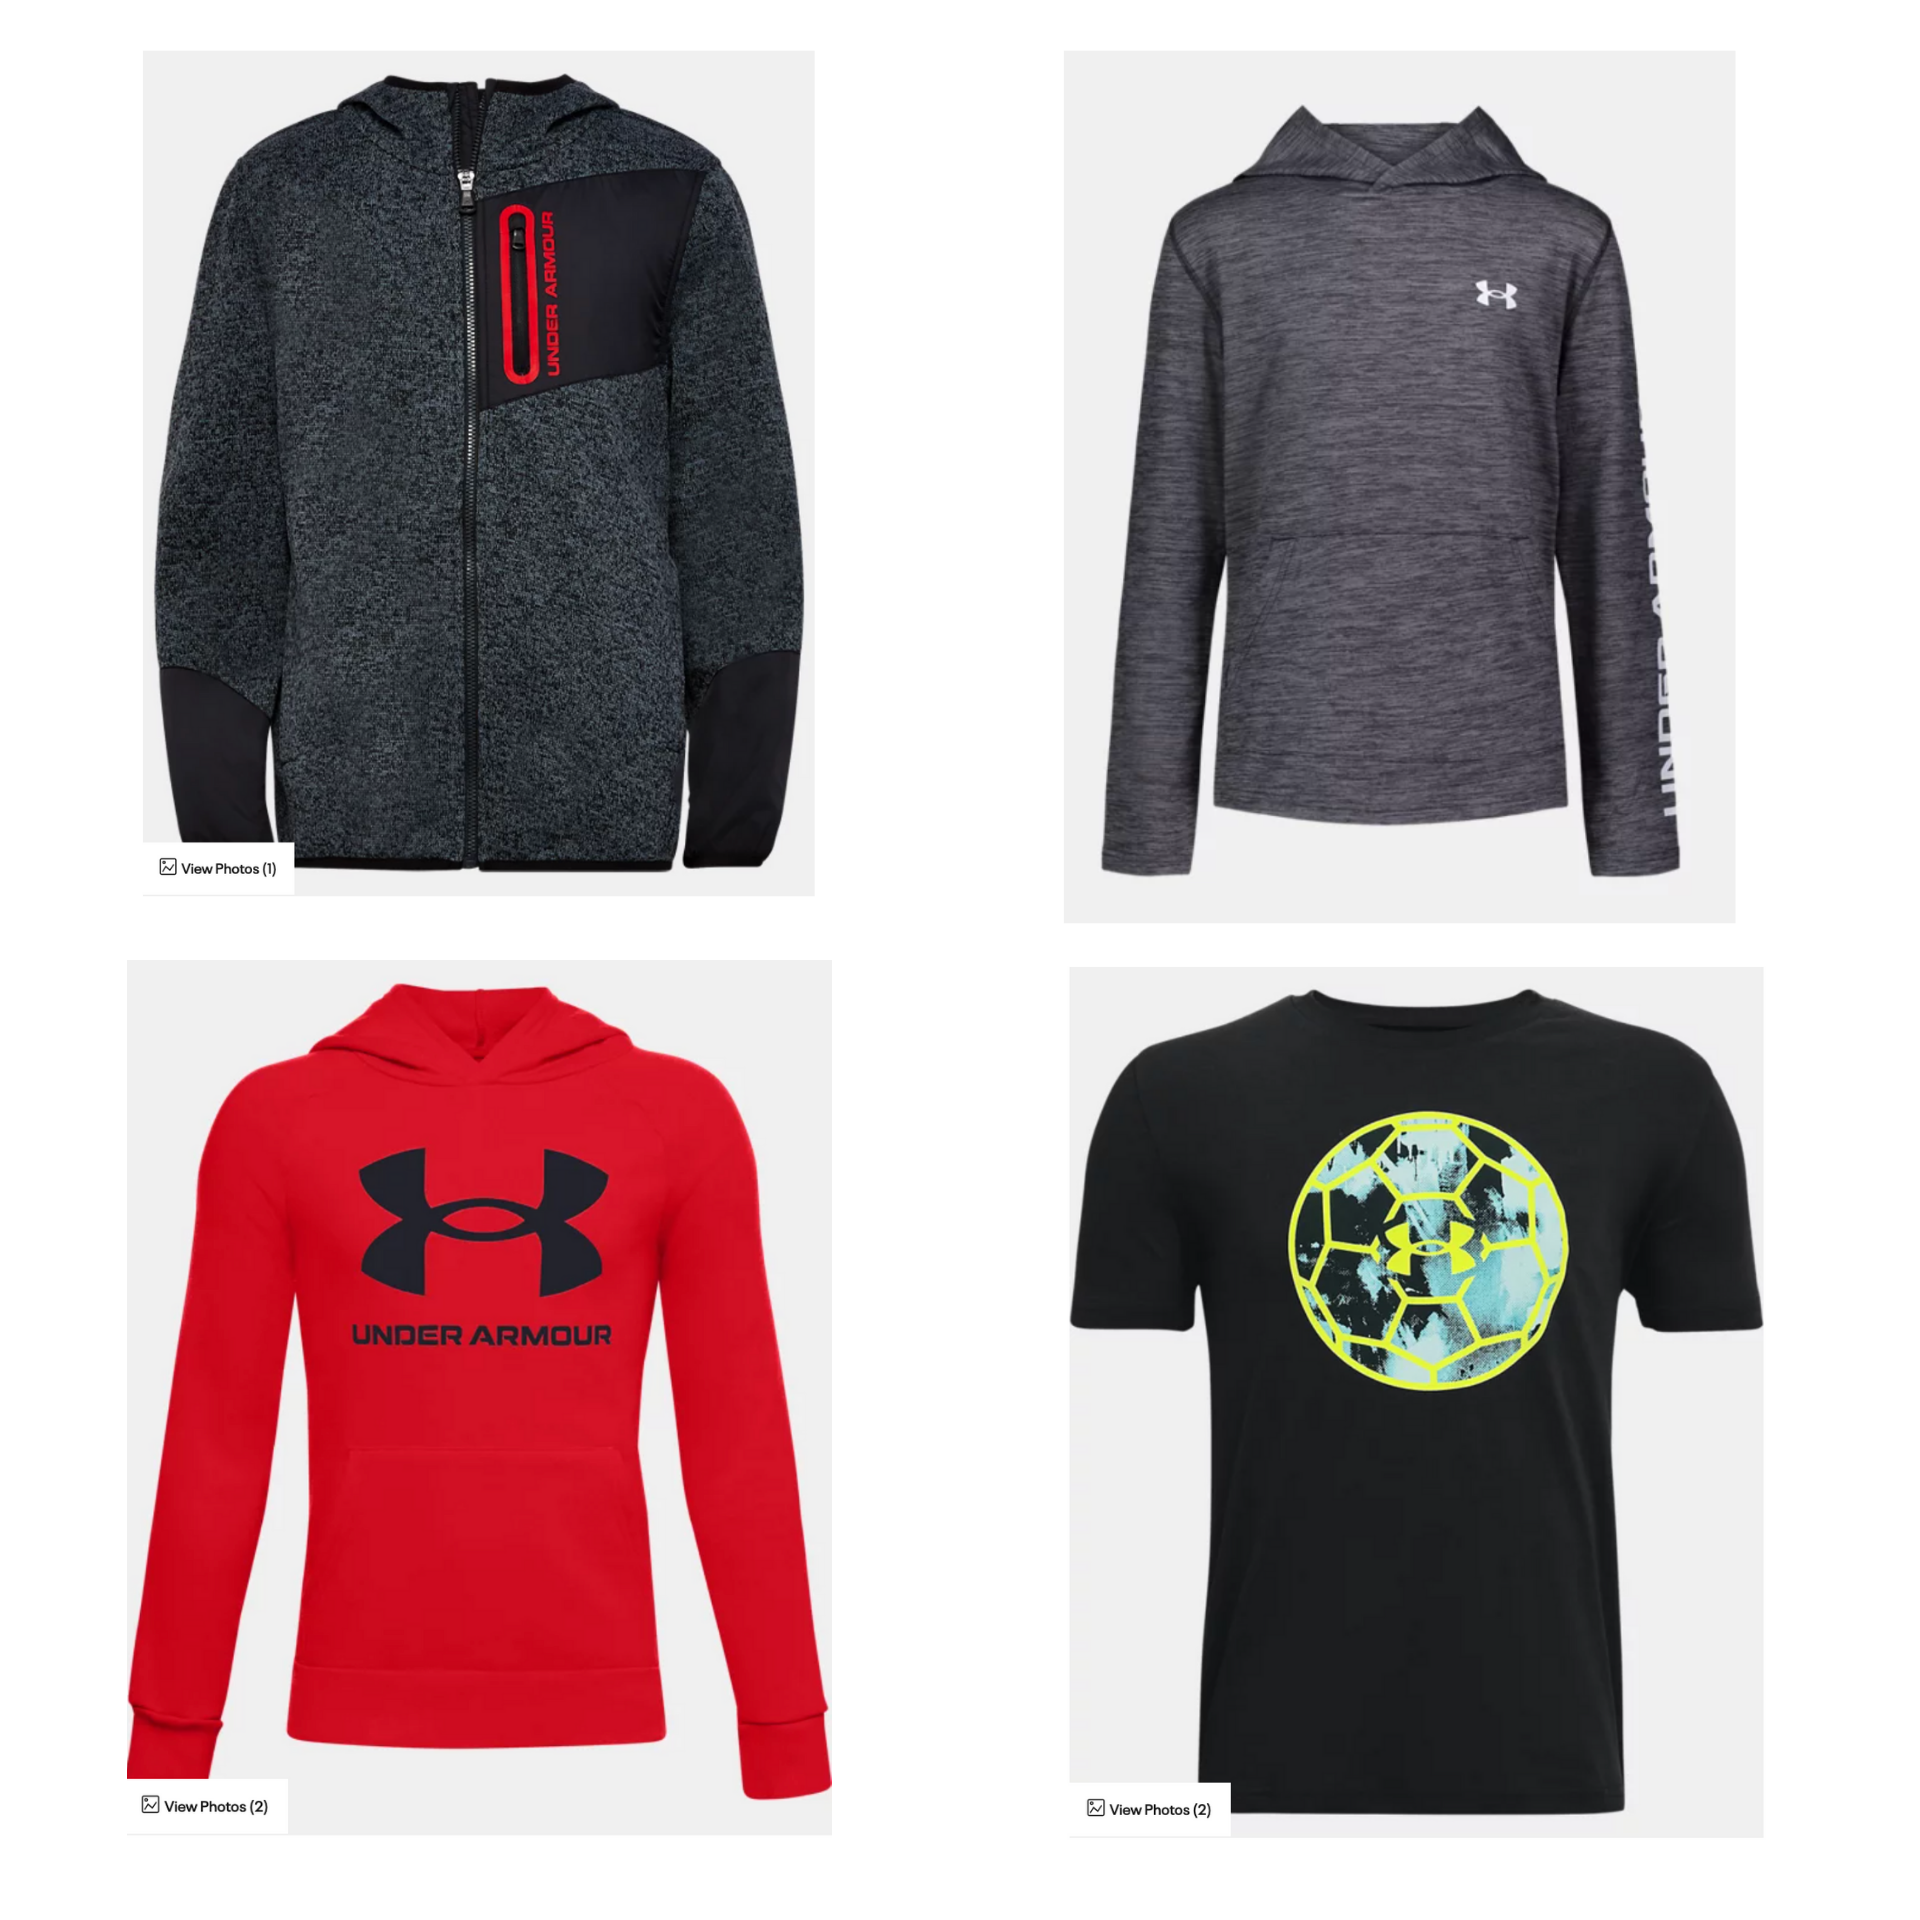 Save 50-75% off Kids Under Armour